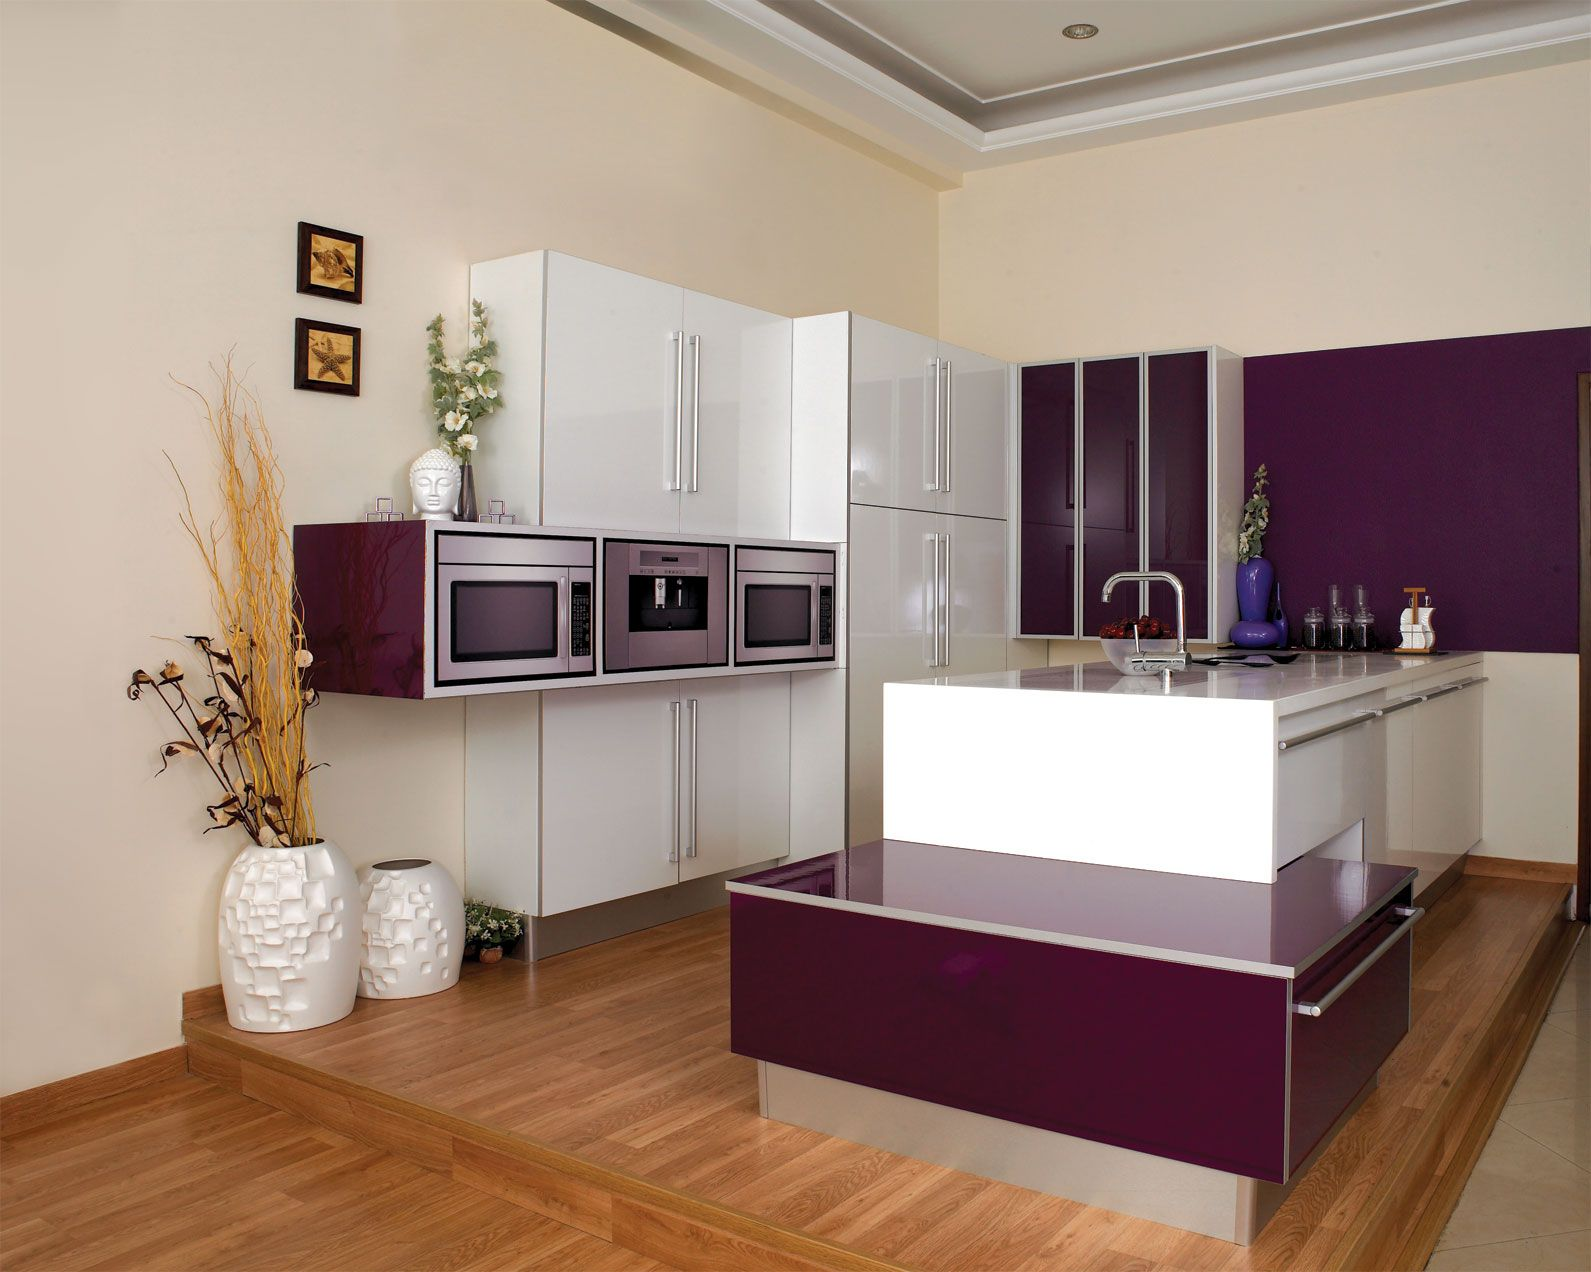 Buy Kitchen Accessories From Top Brands In Ludhiana At Affordable Alluring Kitchen Design Brands Design Inspiration